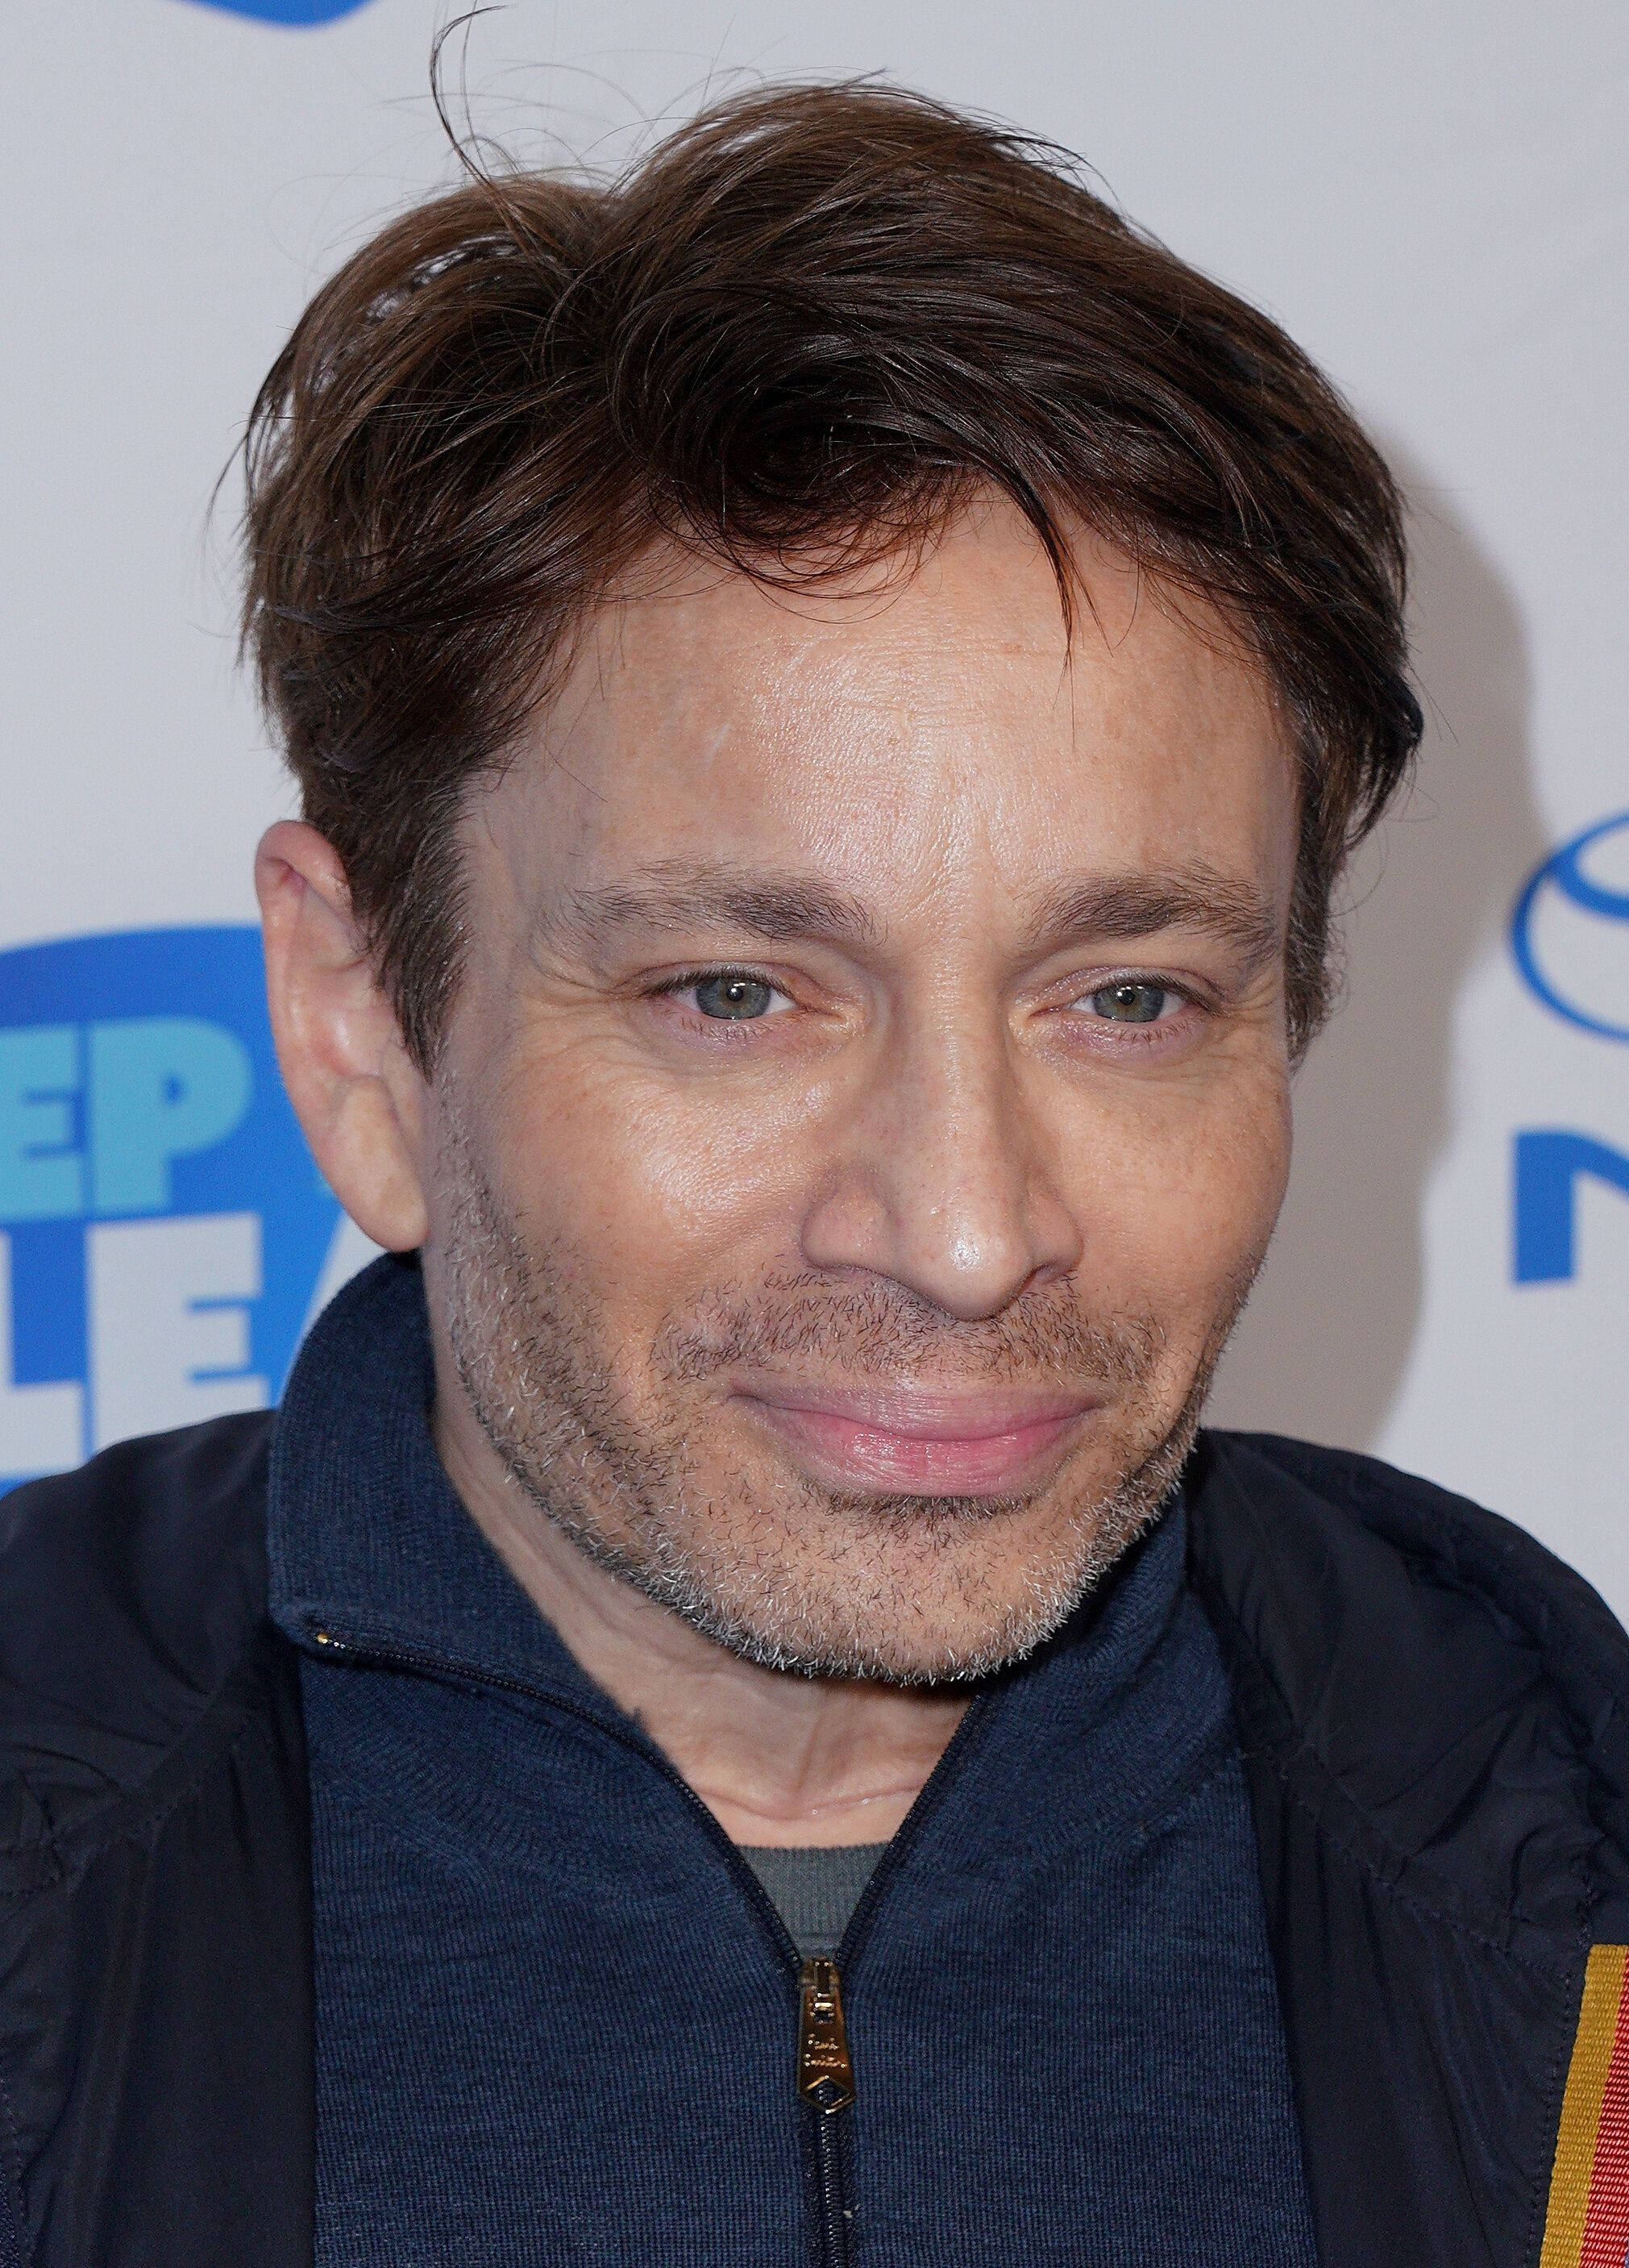 HOLLYWOOD, CA - MARCH 01:  Actor Chris Kattan attends Keep It Clean Live Comedy Benefit for Waterkeeper Alliance at Avalon on March 1, 2018 in Hollywood, California.  (Photo by JC Olivera/Getty Images)